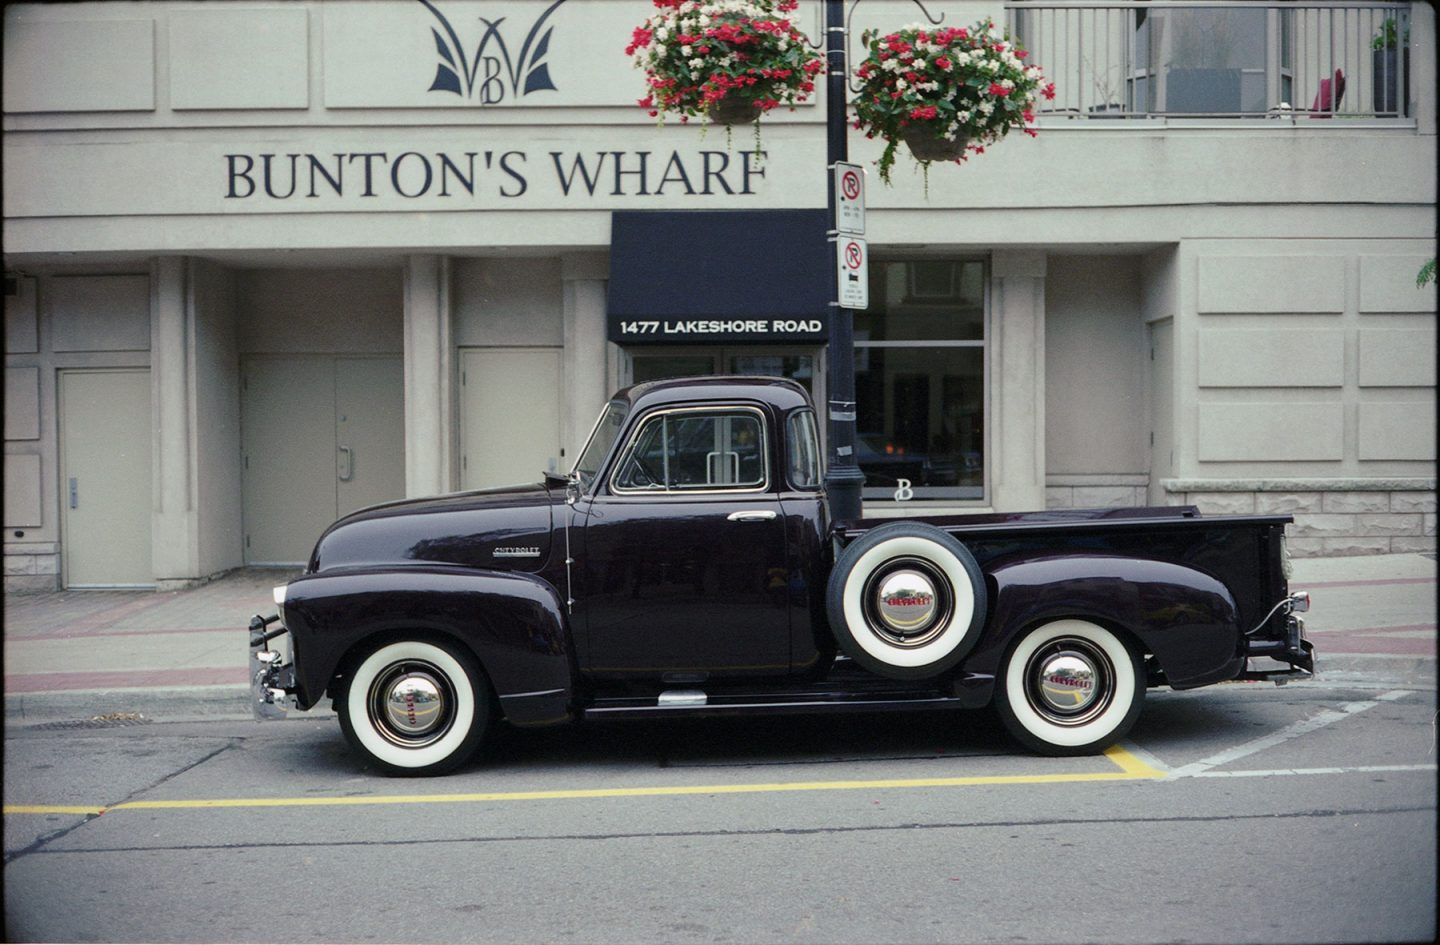 Burlington Cars  – Canon Canonet QL17 35mm film